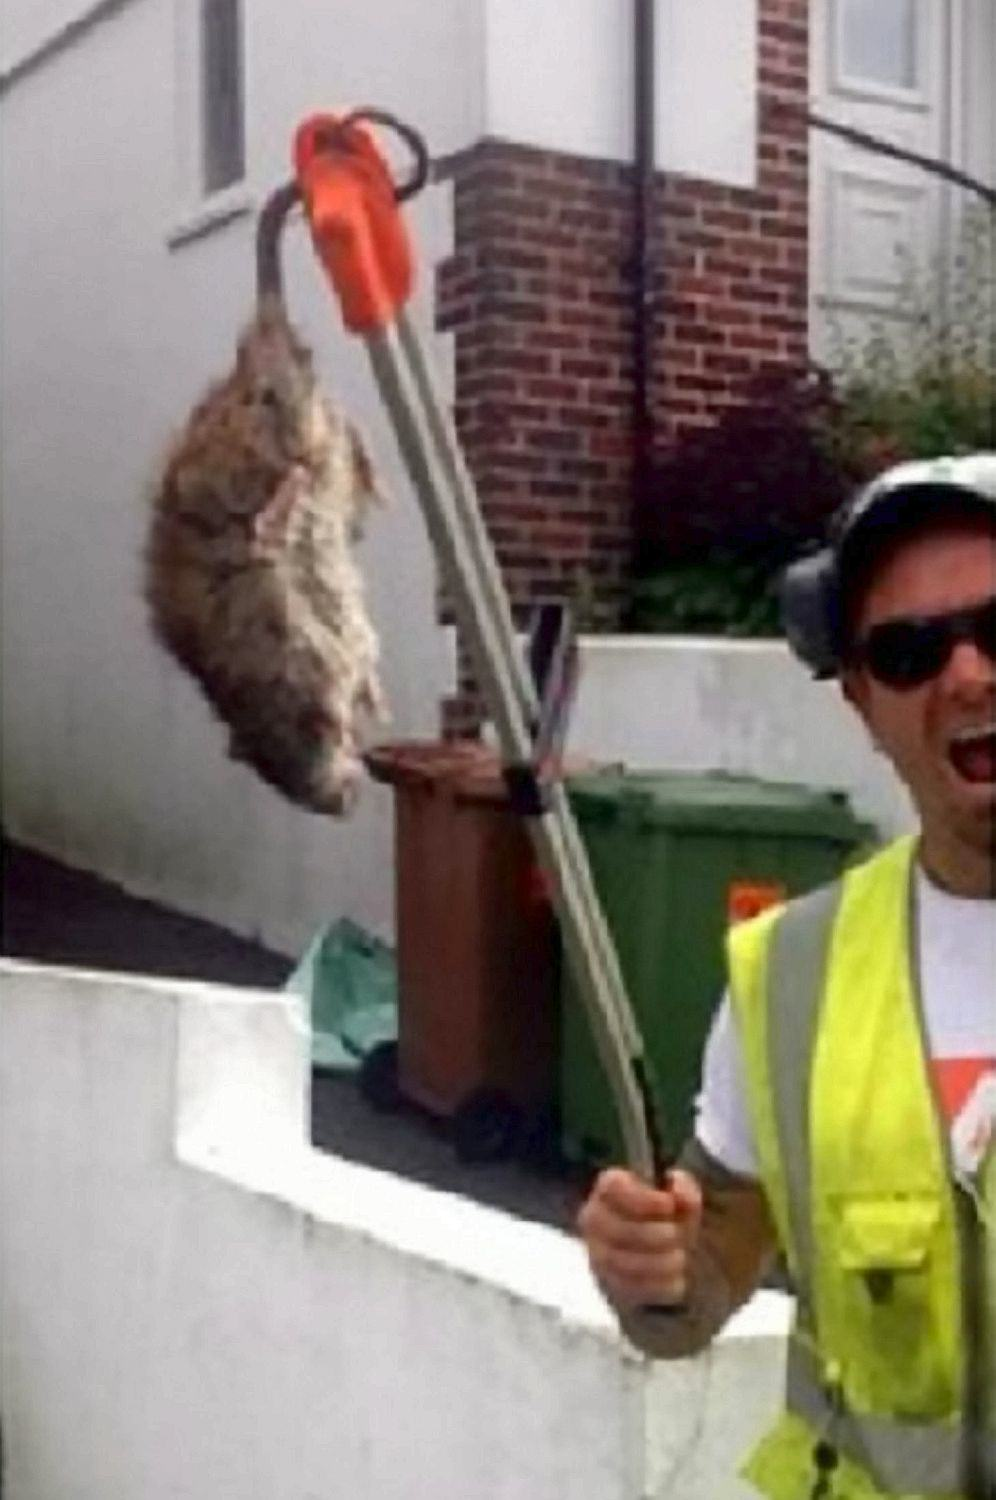 Ben LandricombeSWNS Rat The Size Of A Dog Chases Binman Down The Street In Plymouth